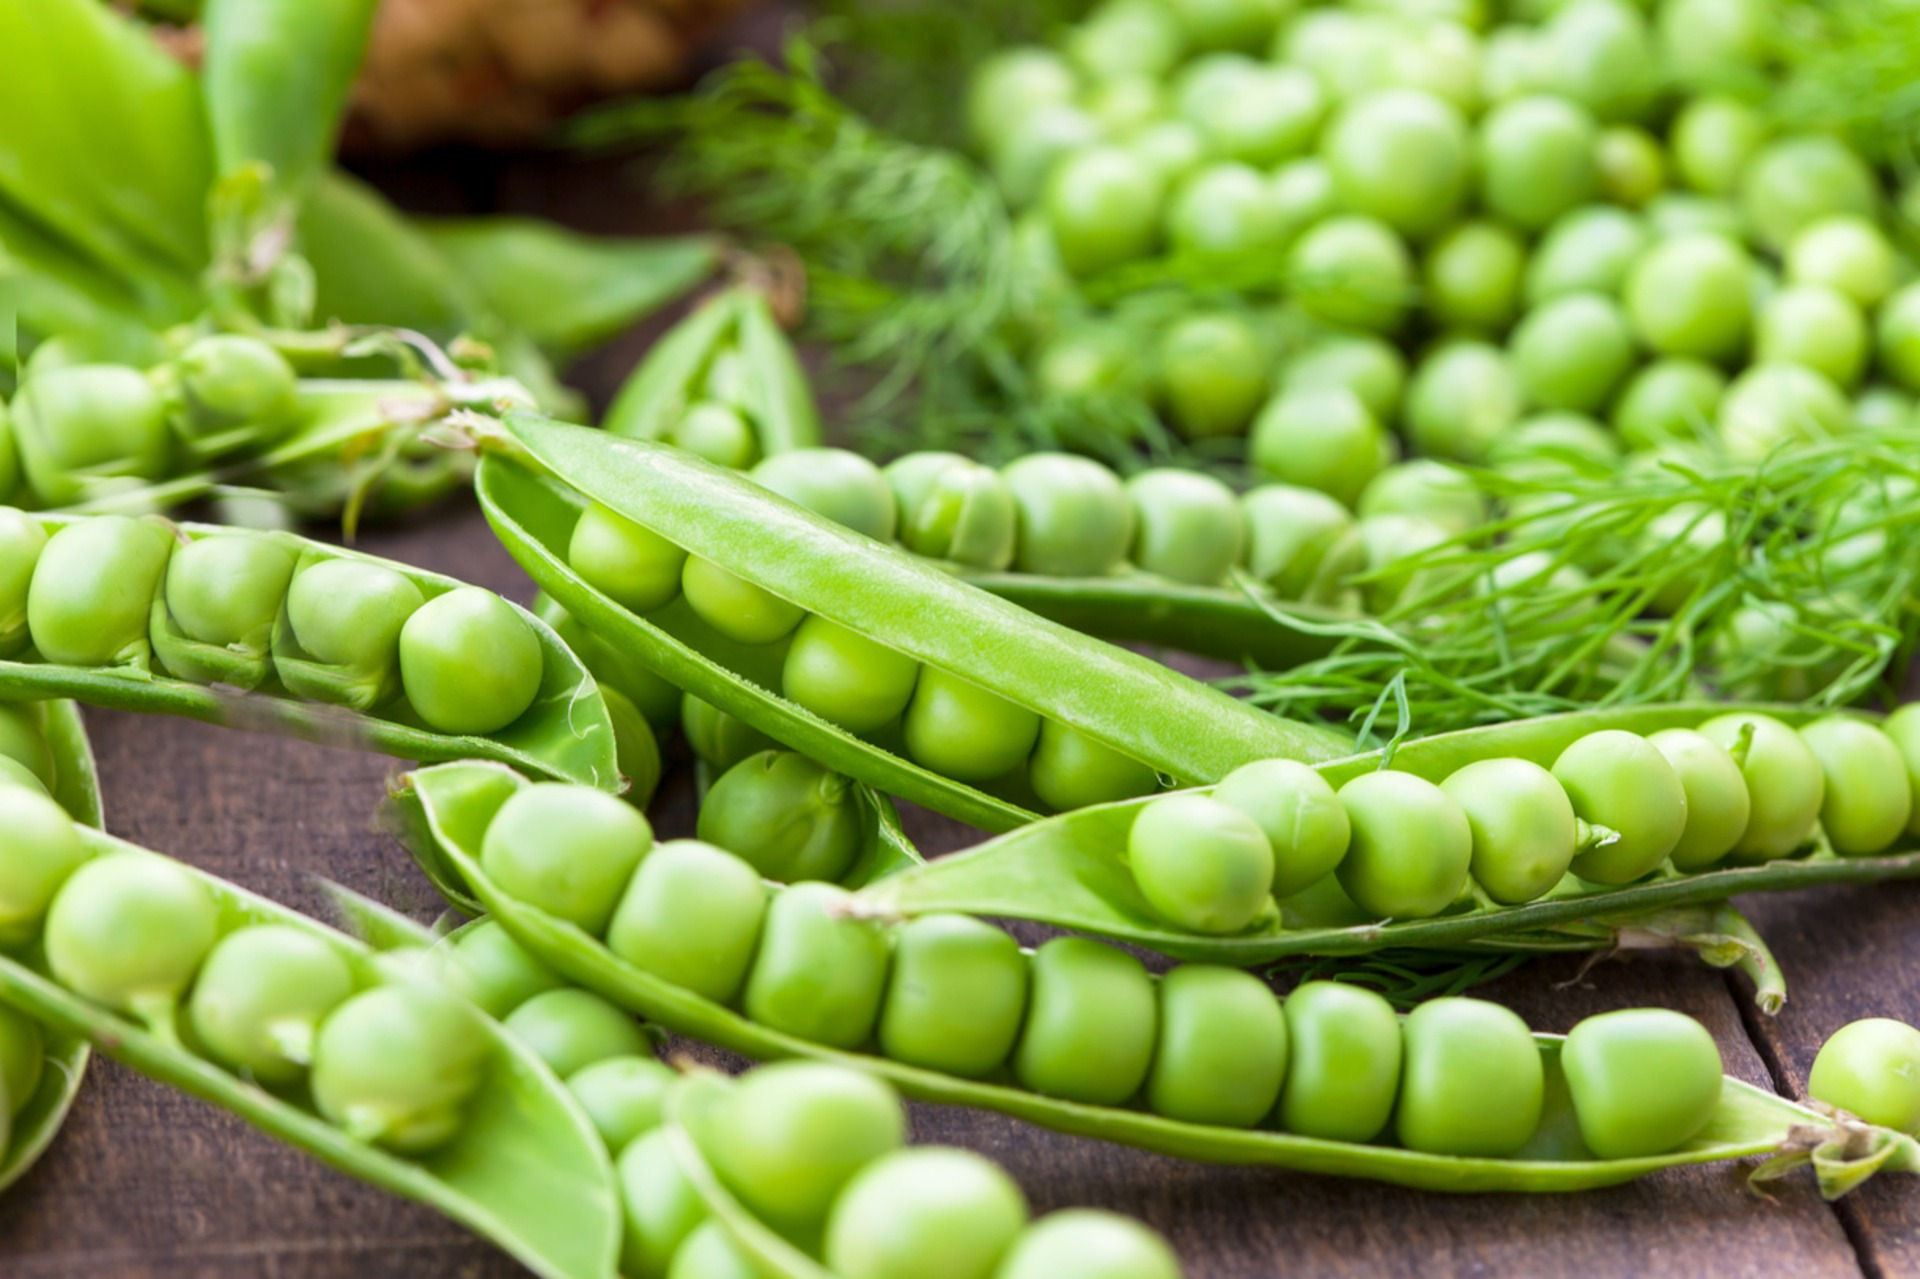 Fresh peas in pods